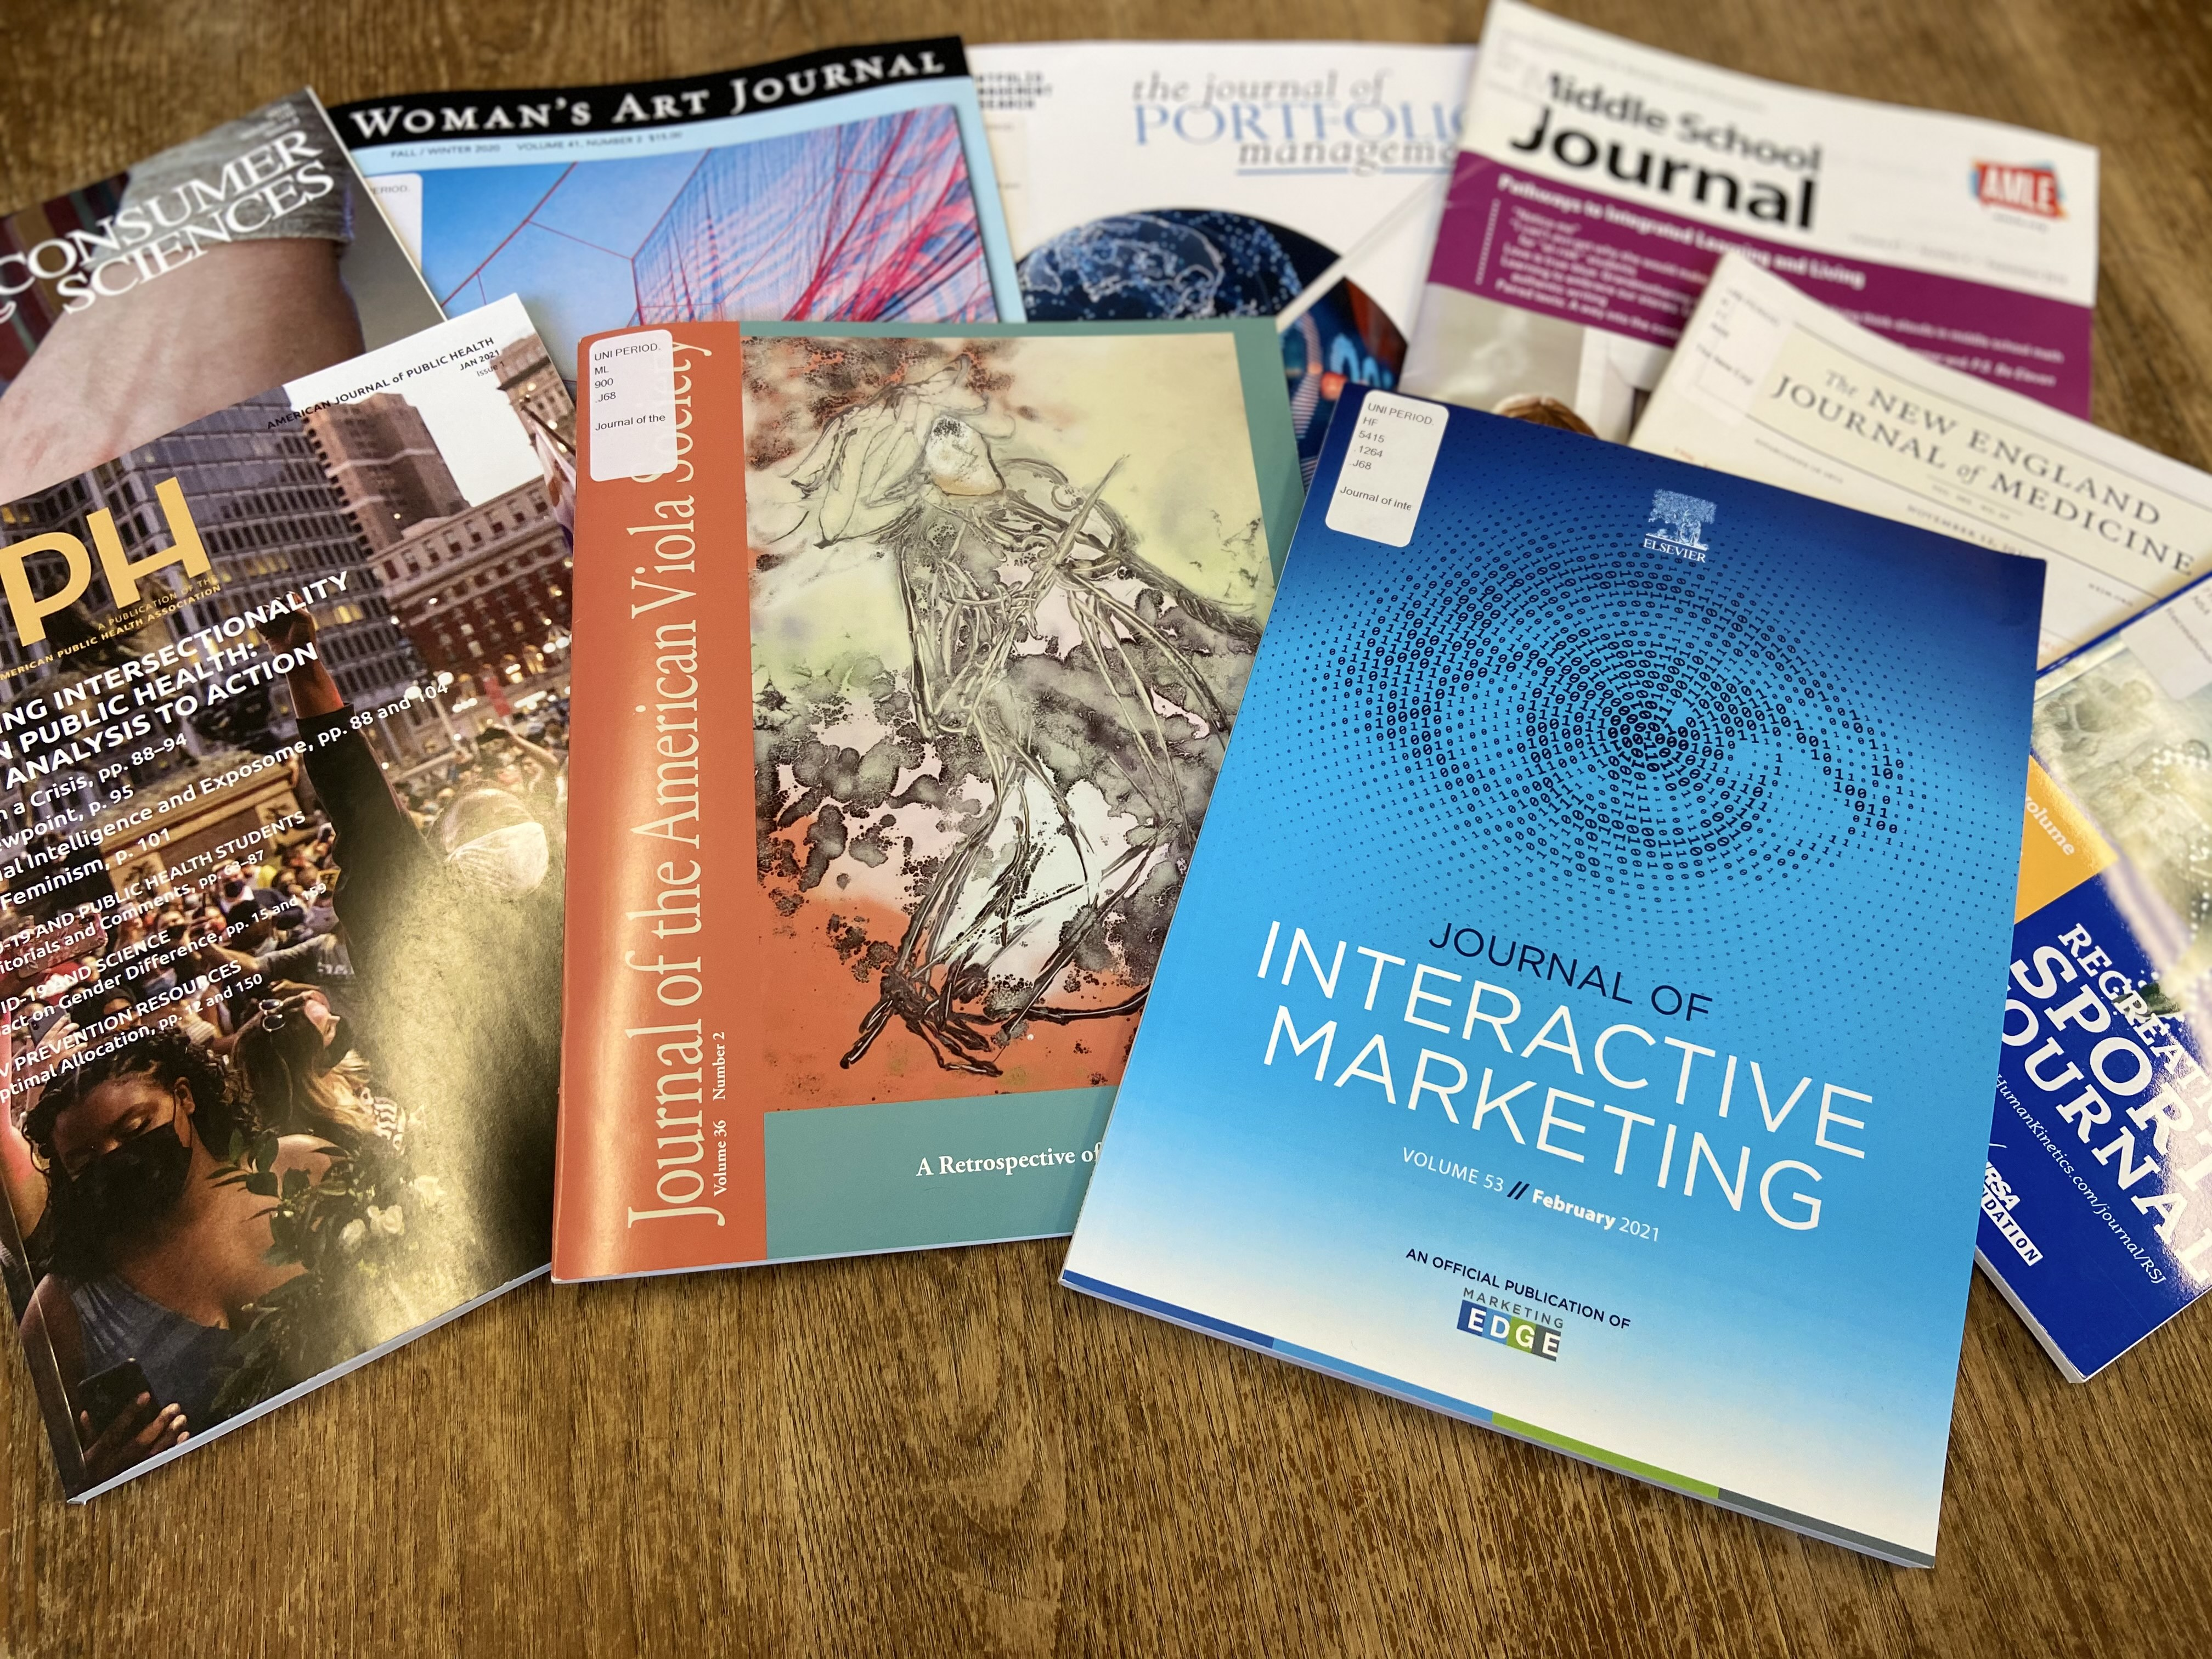 A mix of scholarly journals on a table, including the journal of interactive marketing